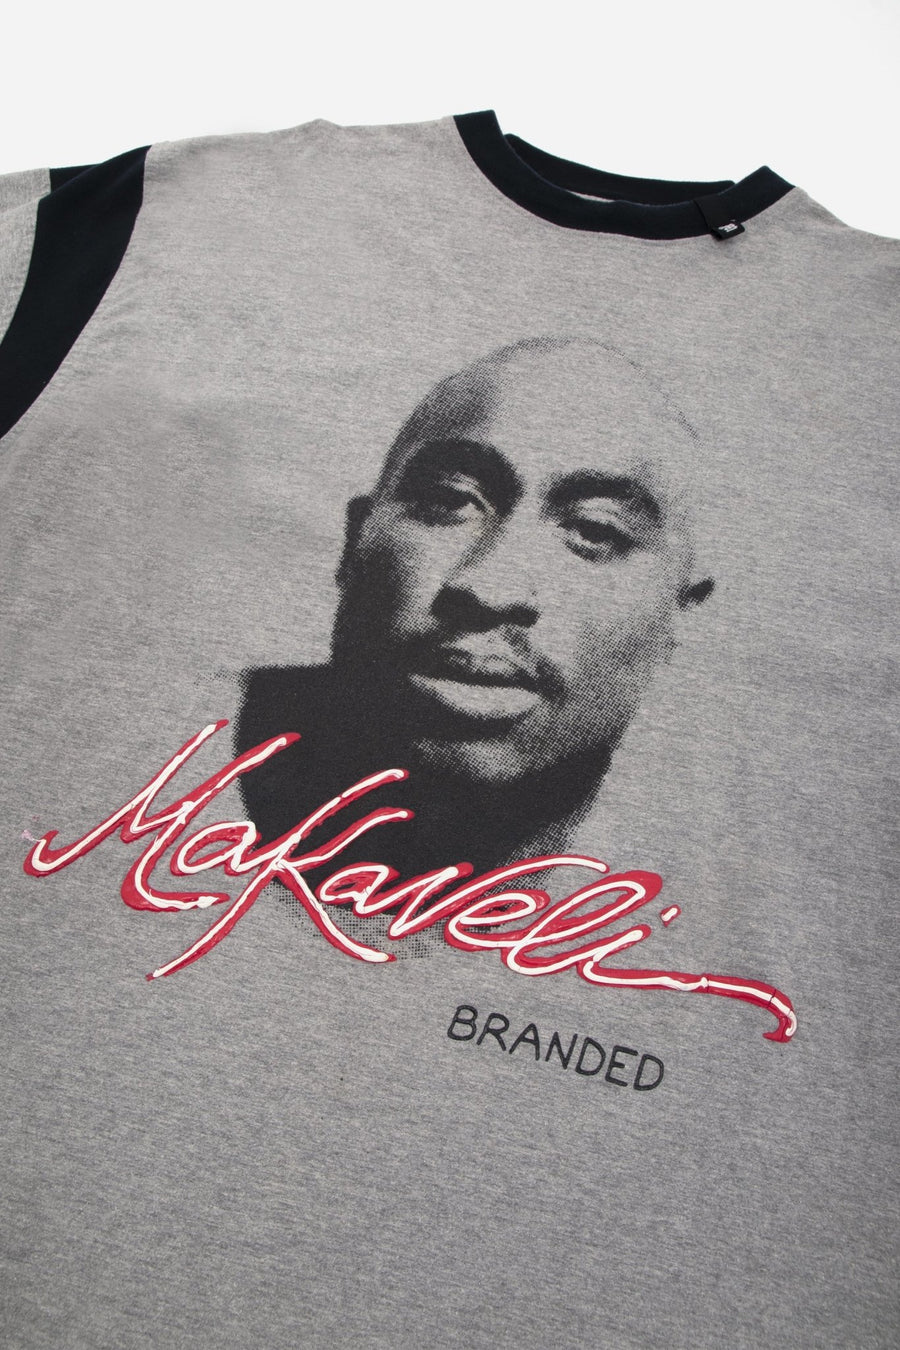 T-shirt Makaveli 2Pac - WASTED PARIS